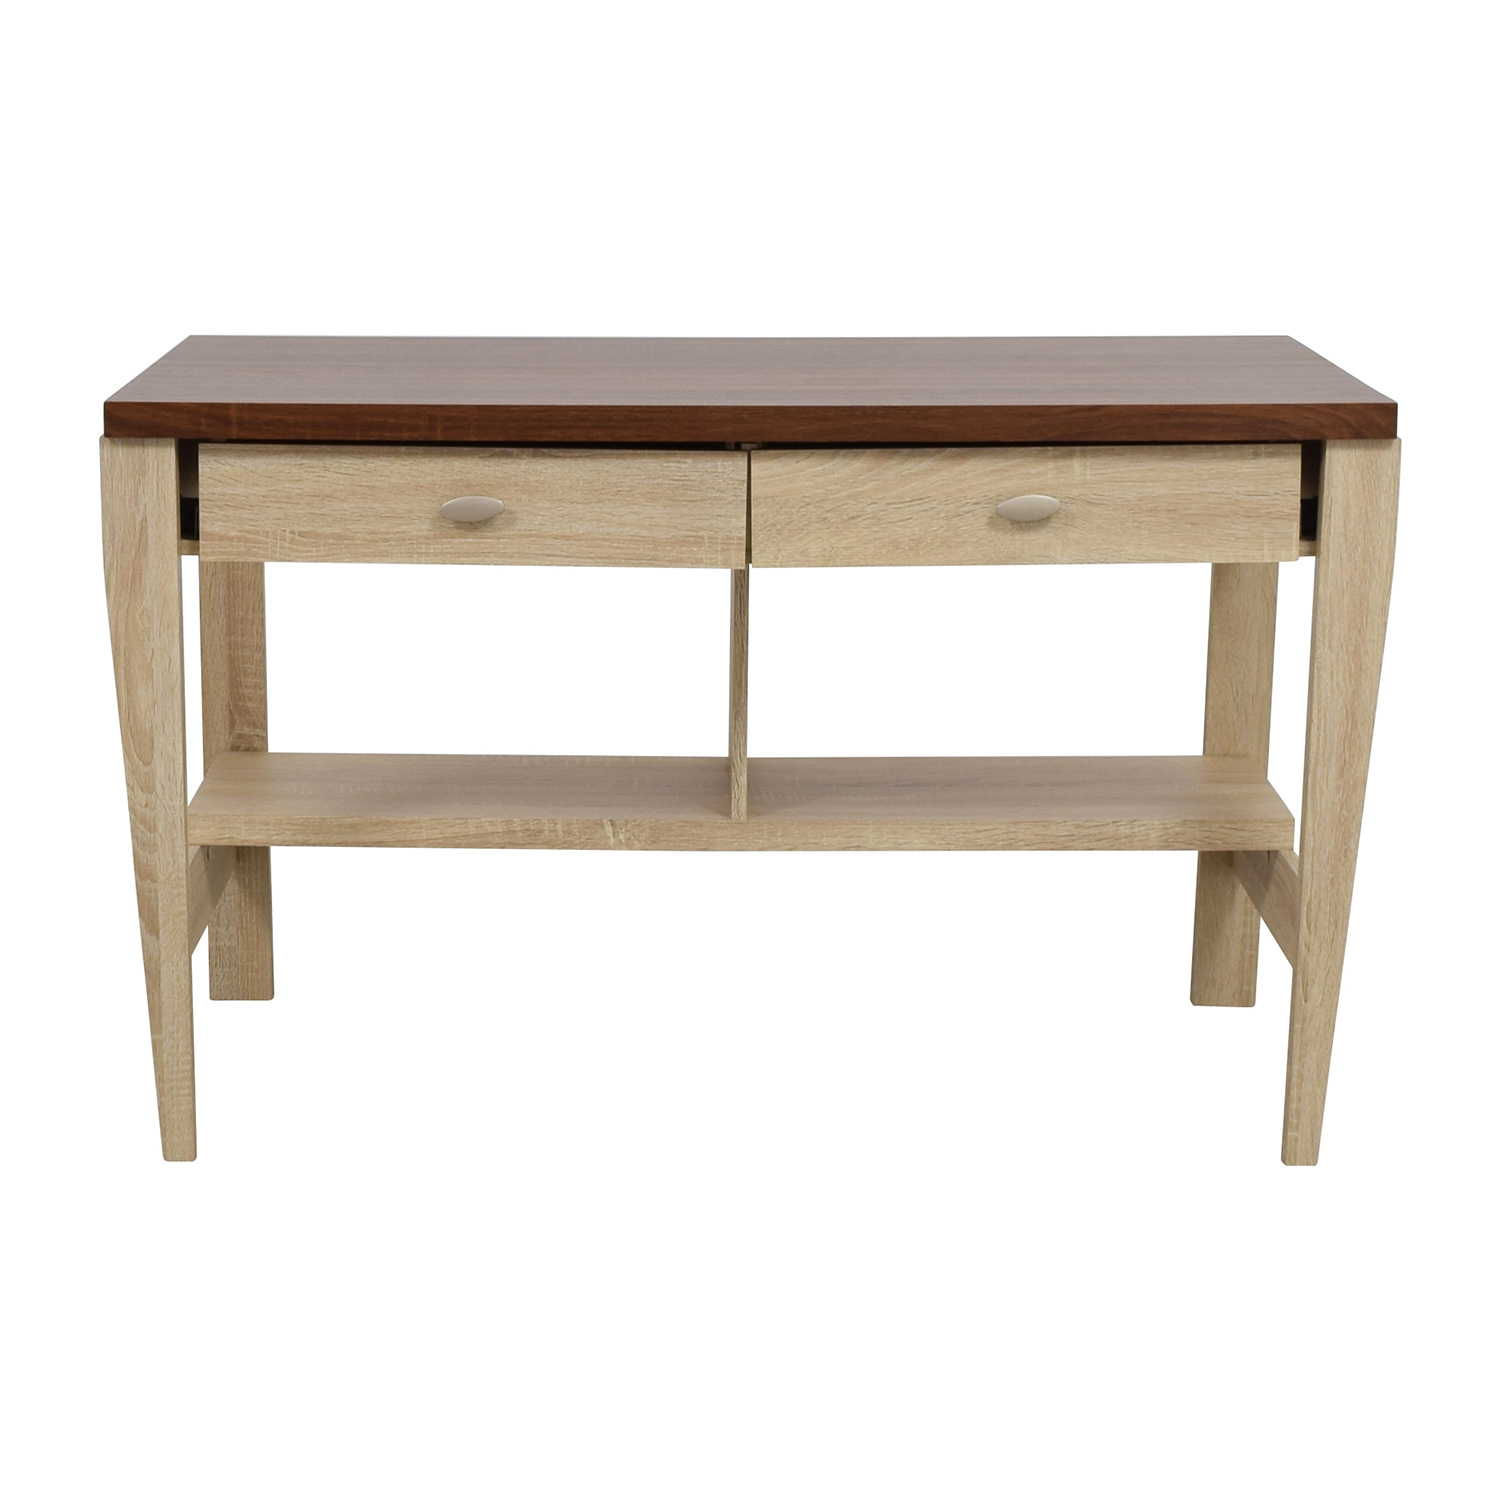 Joss and Main Joss & Main Baxton Two-Toned Writing Desk nj